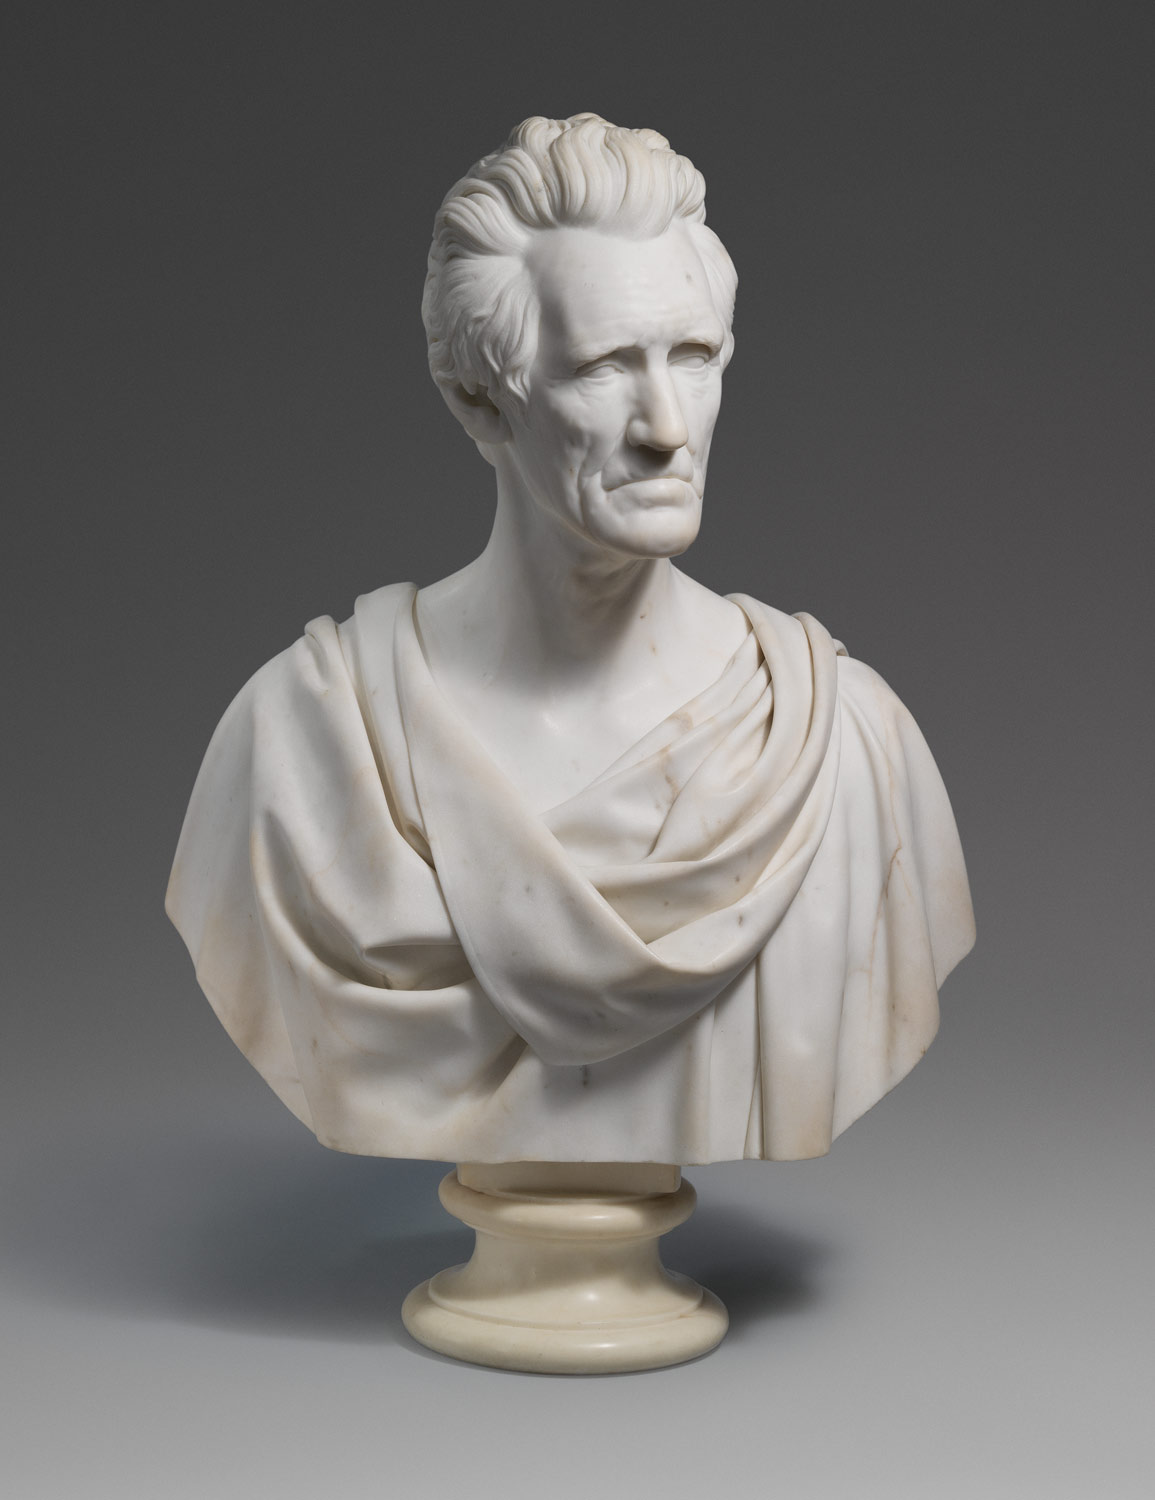 andrew jackson hiram powers 94 14 work of art heilbrunn andrew jackson